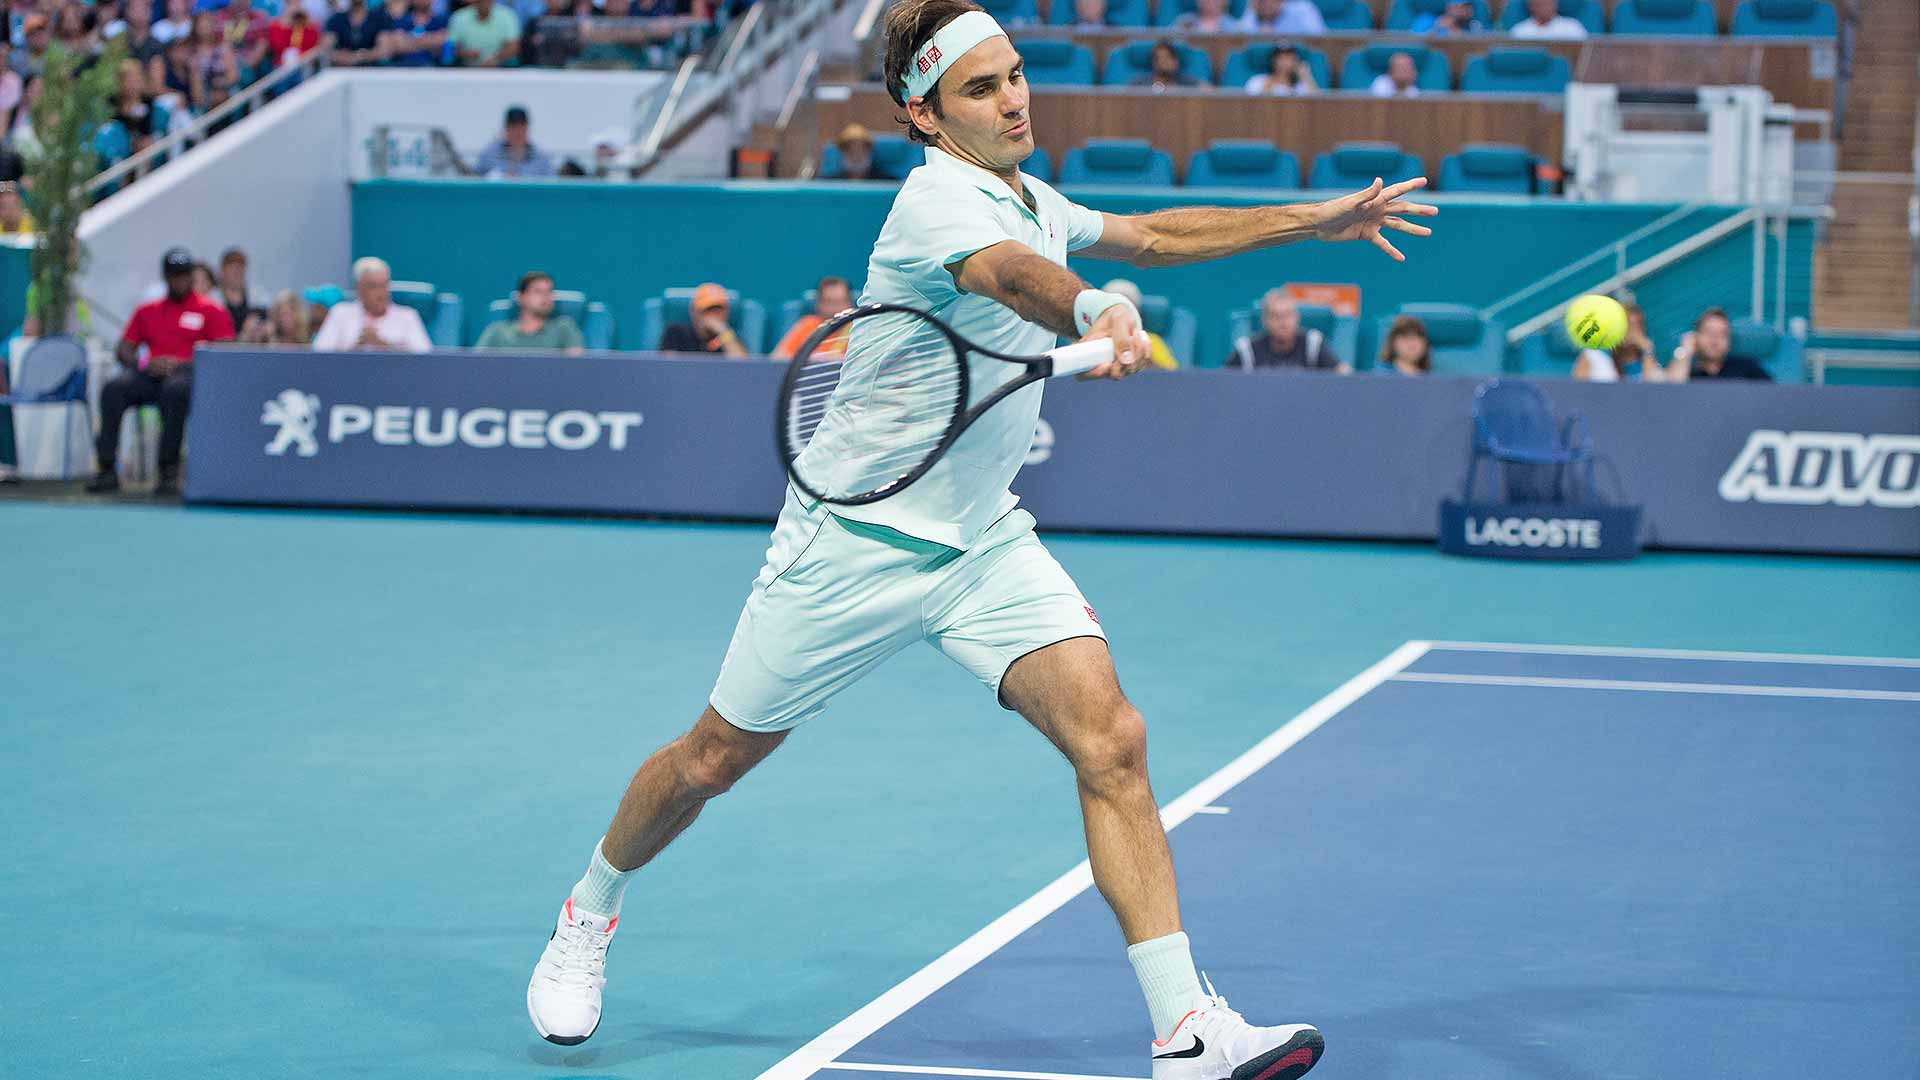 Roger Federer hit a forehand against Radu Albot at the Miami Open on Saturday.